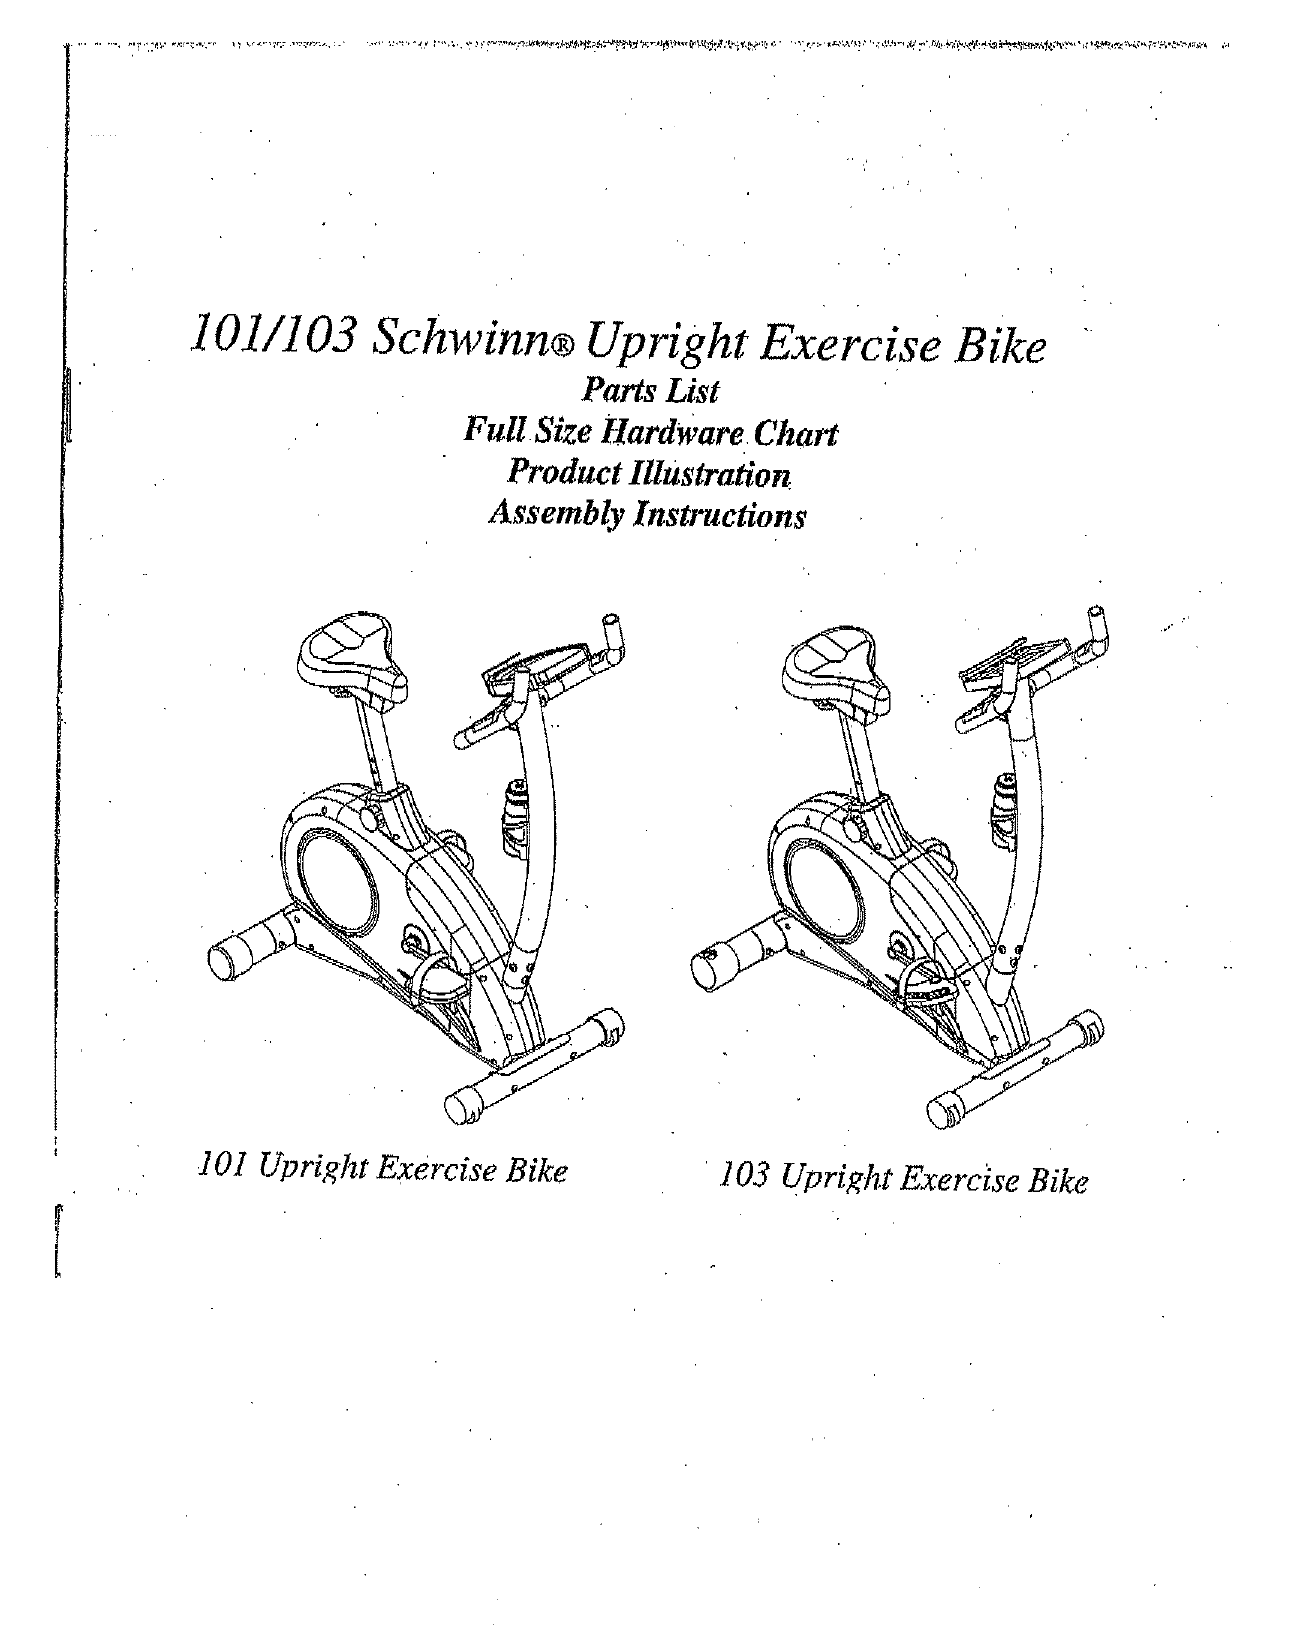 schwinn 103 owner s manual free pdf download 12 pages rh manualagent com Schwinn 12 Function Manual Schwinn Bicycle Manuals